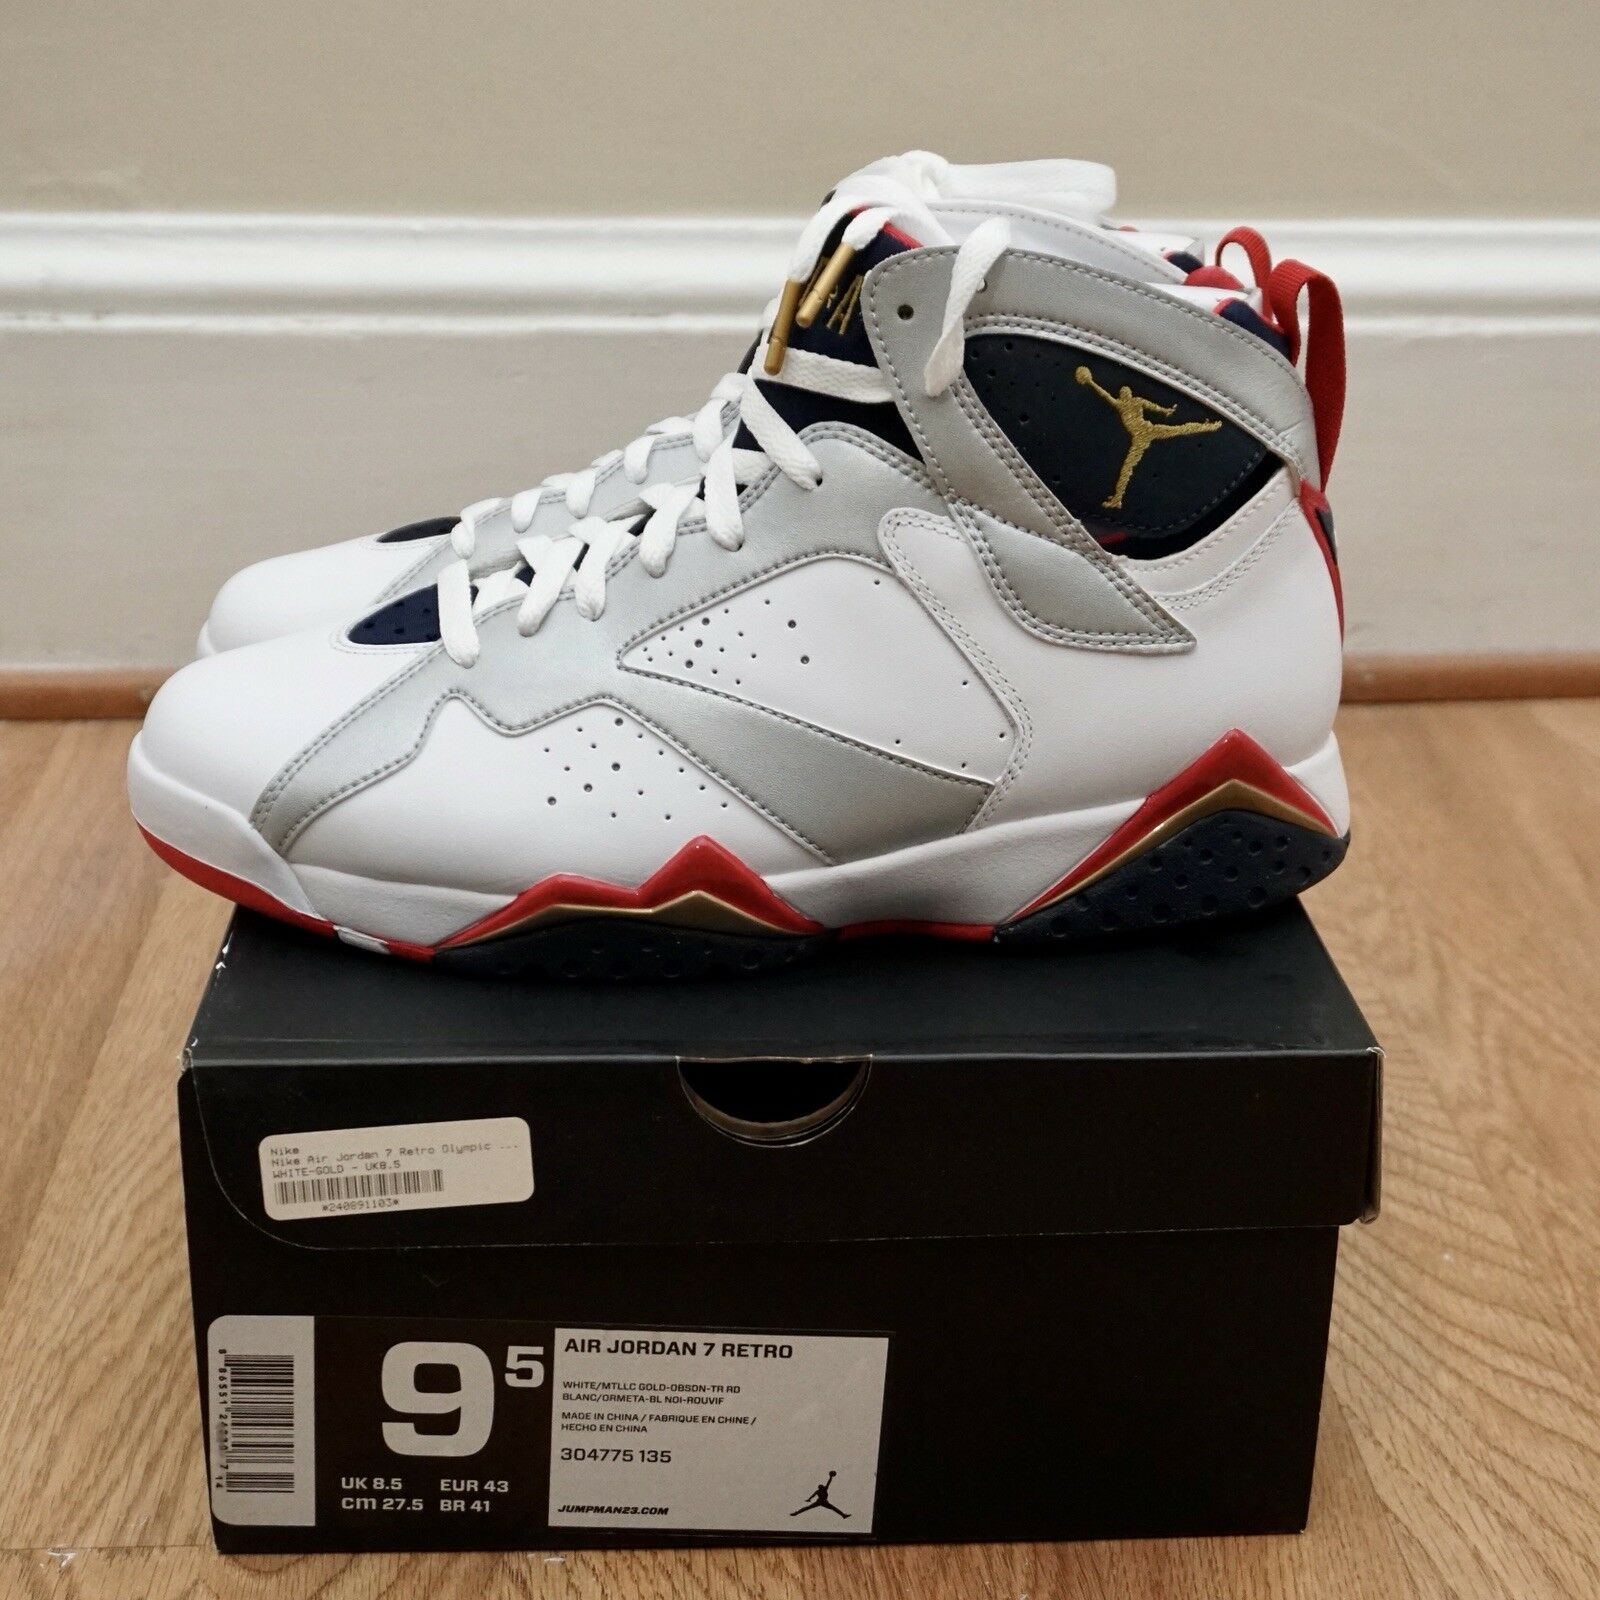 2012 Nike Nike Nike Air Jordan Retro 7  Olympic  Brand New DS Uomo 304775-135 Dimensione 9.5 12f91d